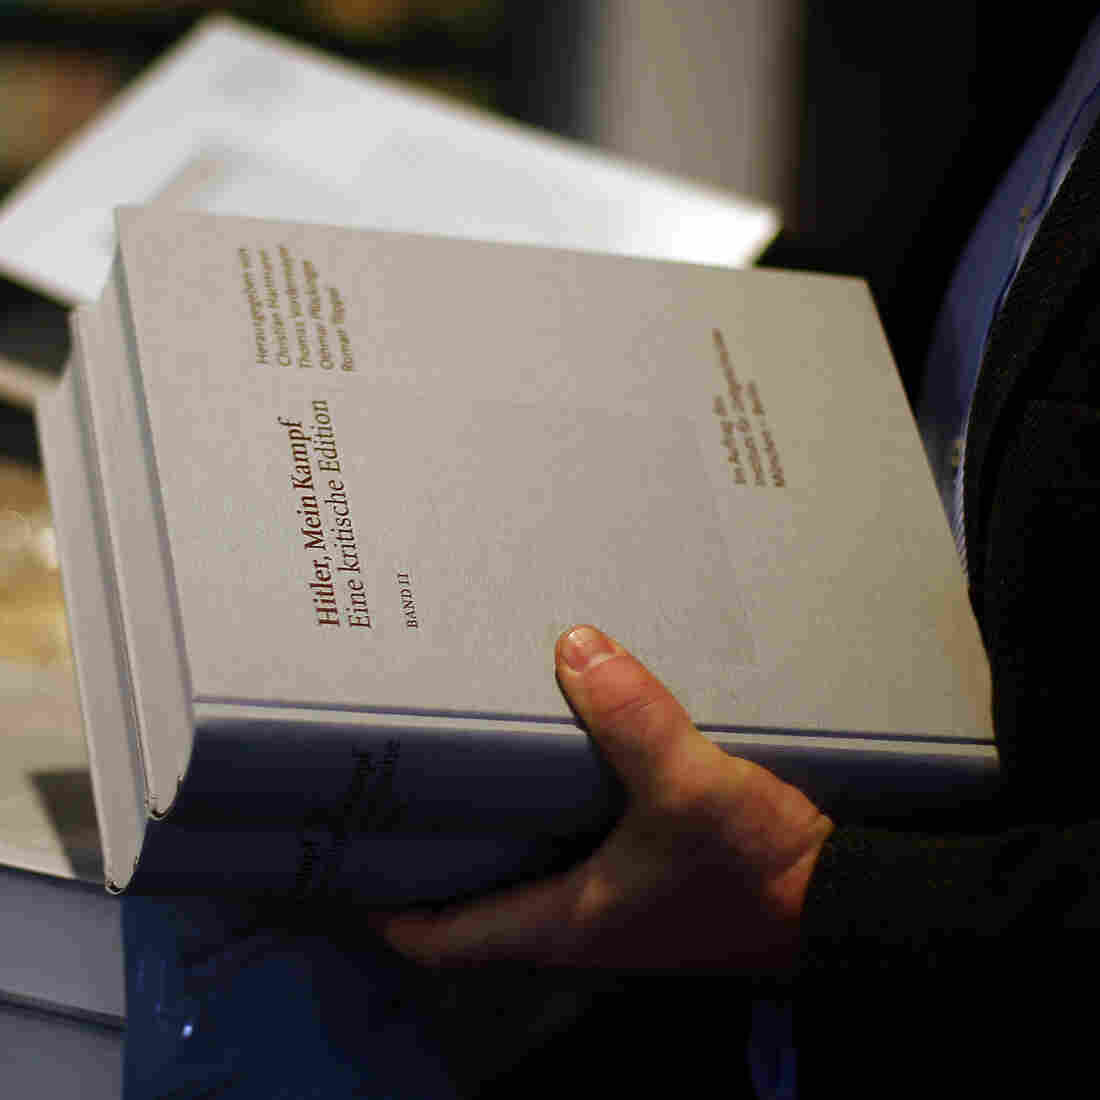 Hitler's 'Mein Kampf' Is Back In German Bookstores After 70 Years